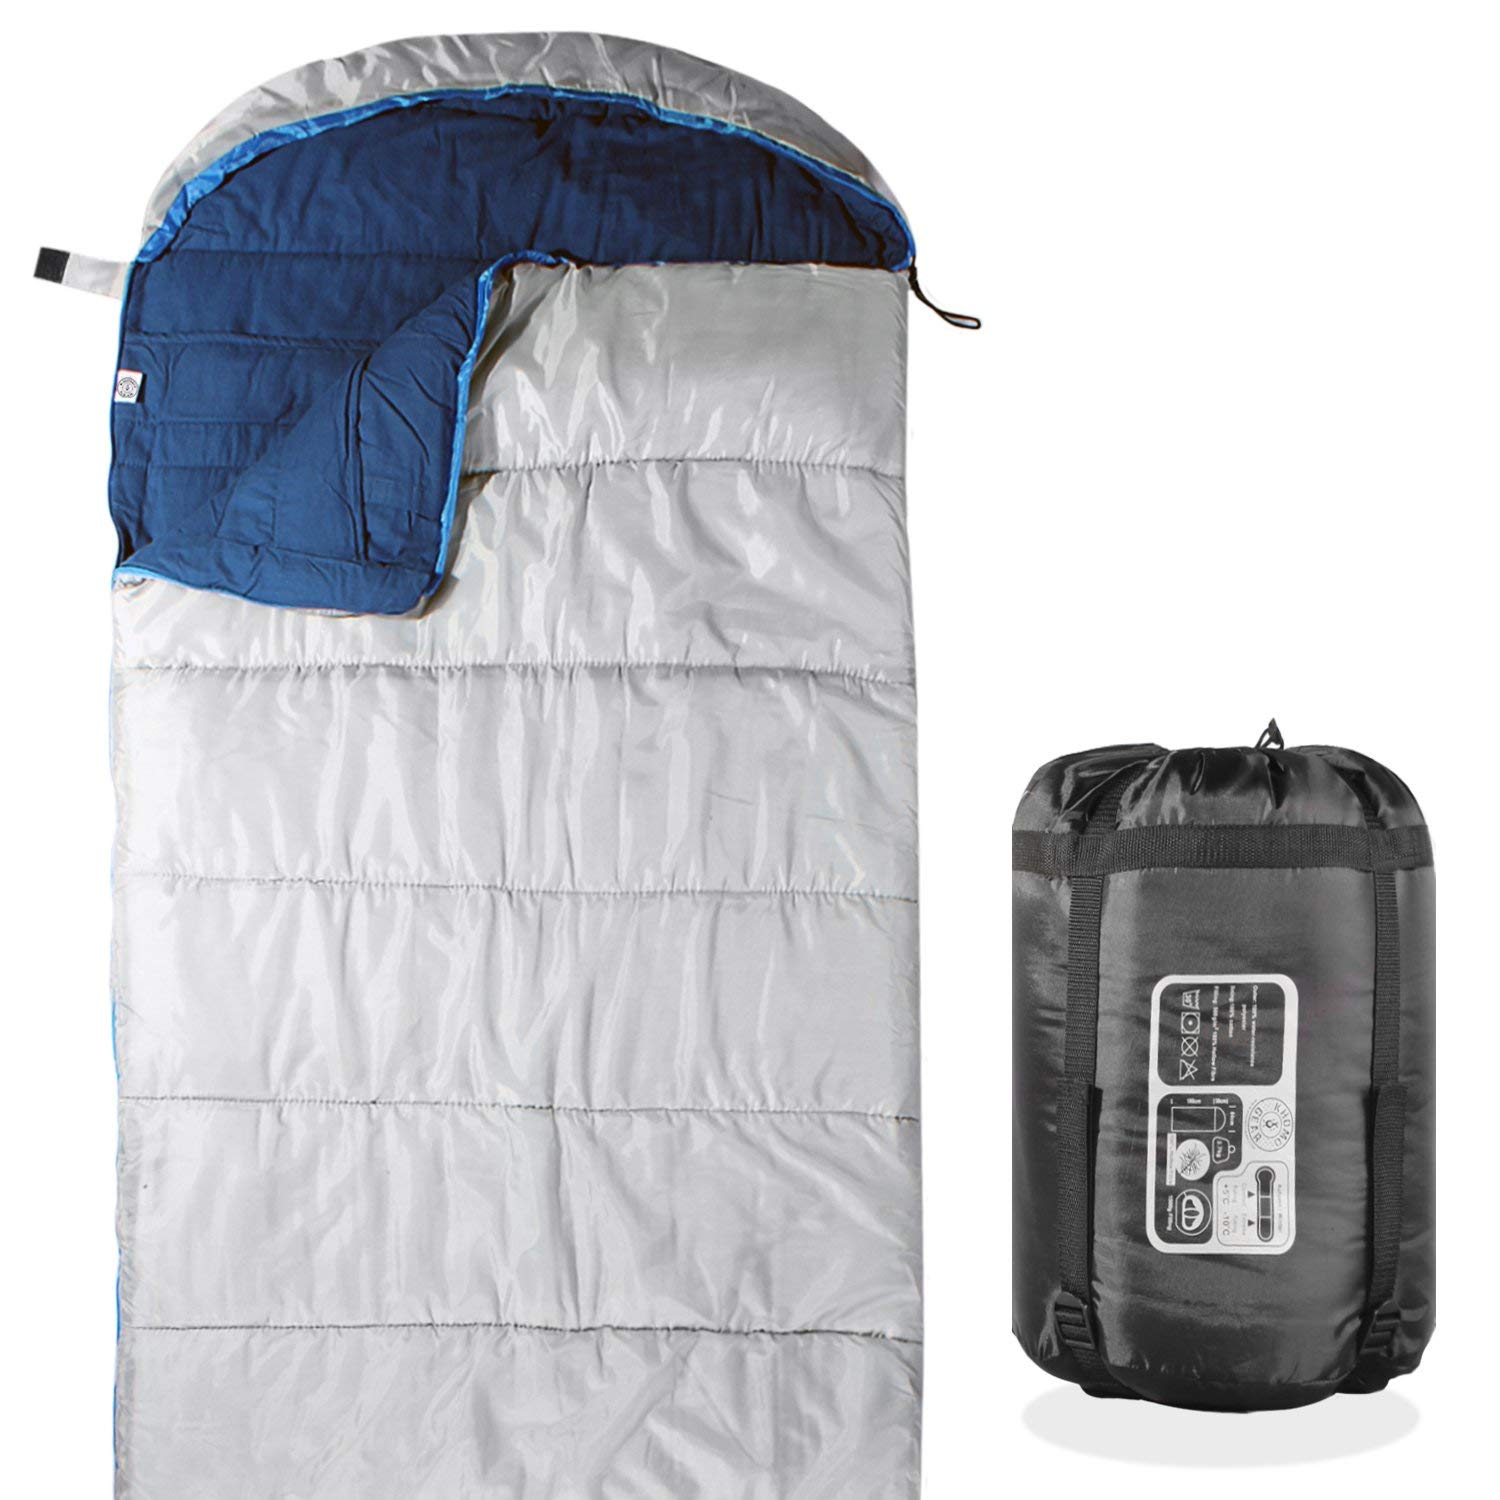 KHOMO Camping GEAR - Compression Activities 3 Season - Sleeping Bag for Hiking Camping & Outdoor Activities - Compression Bag Included [並行輸入品] B07R3Y4ZH3, Rash:5e02cd84 --- anime-portal.club